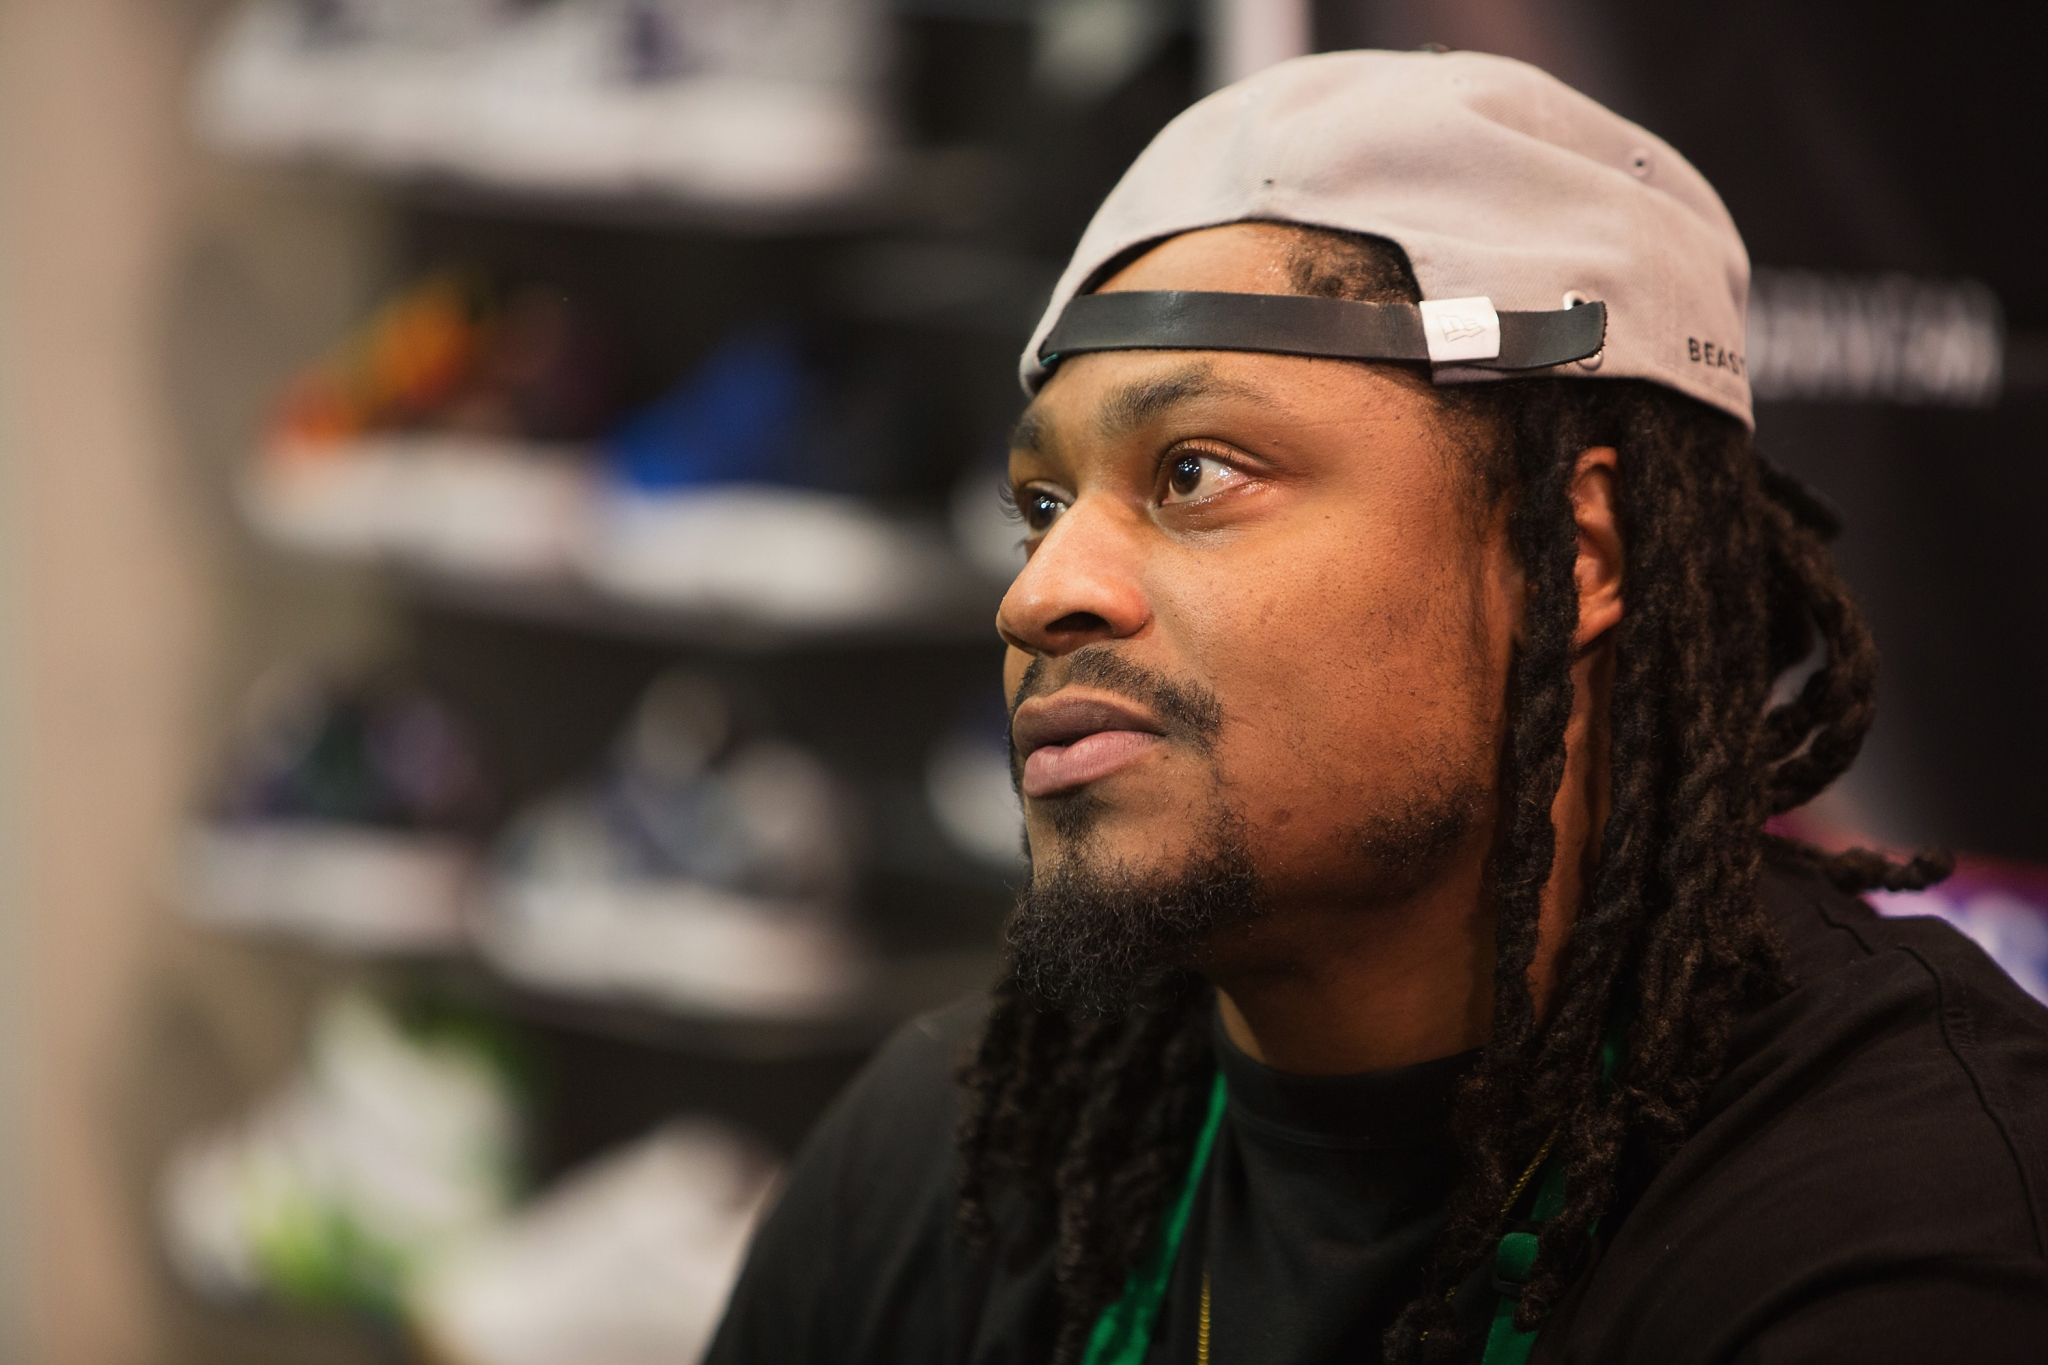 Marshawns Beast Mode Store Offering Free Haircuts To Kids Making